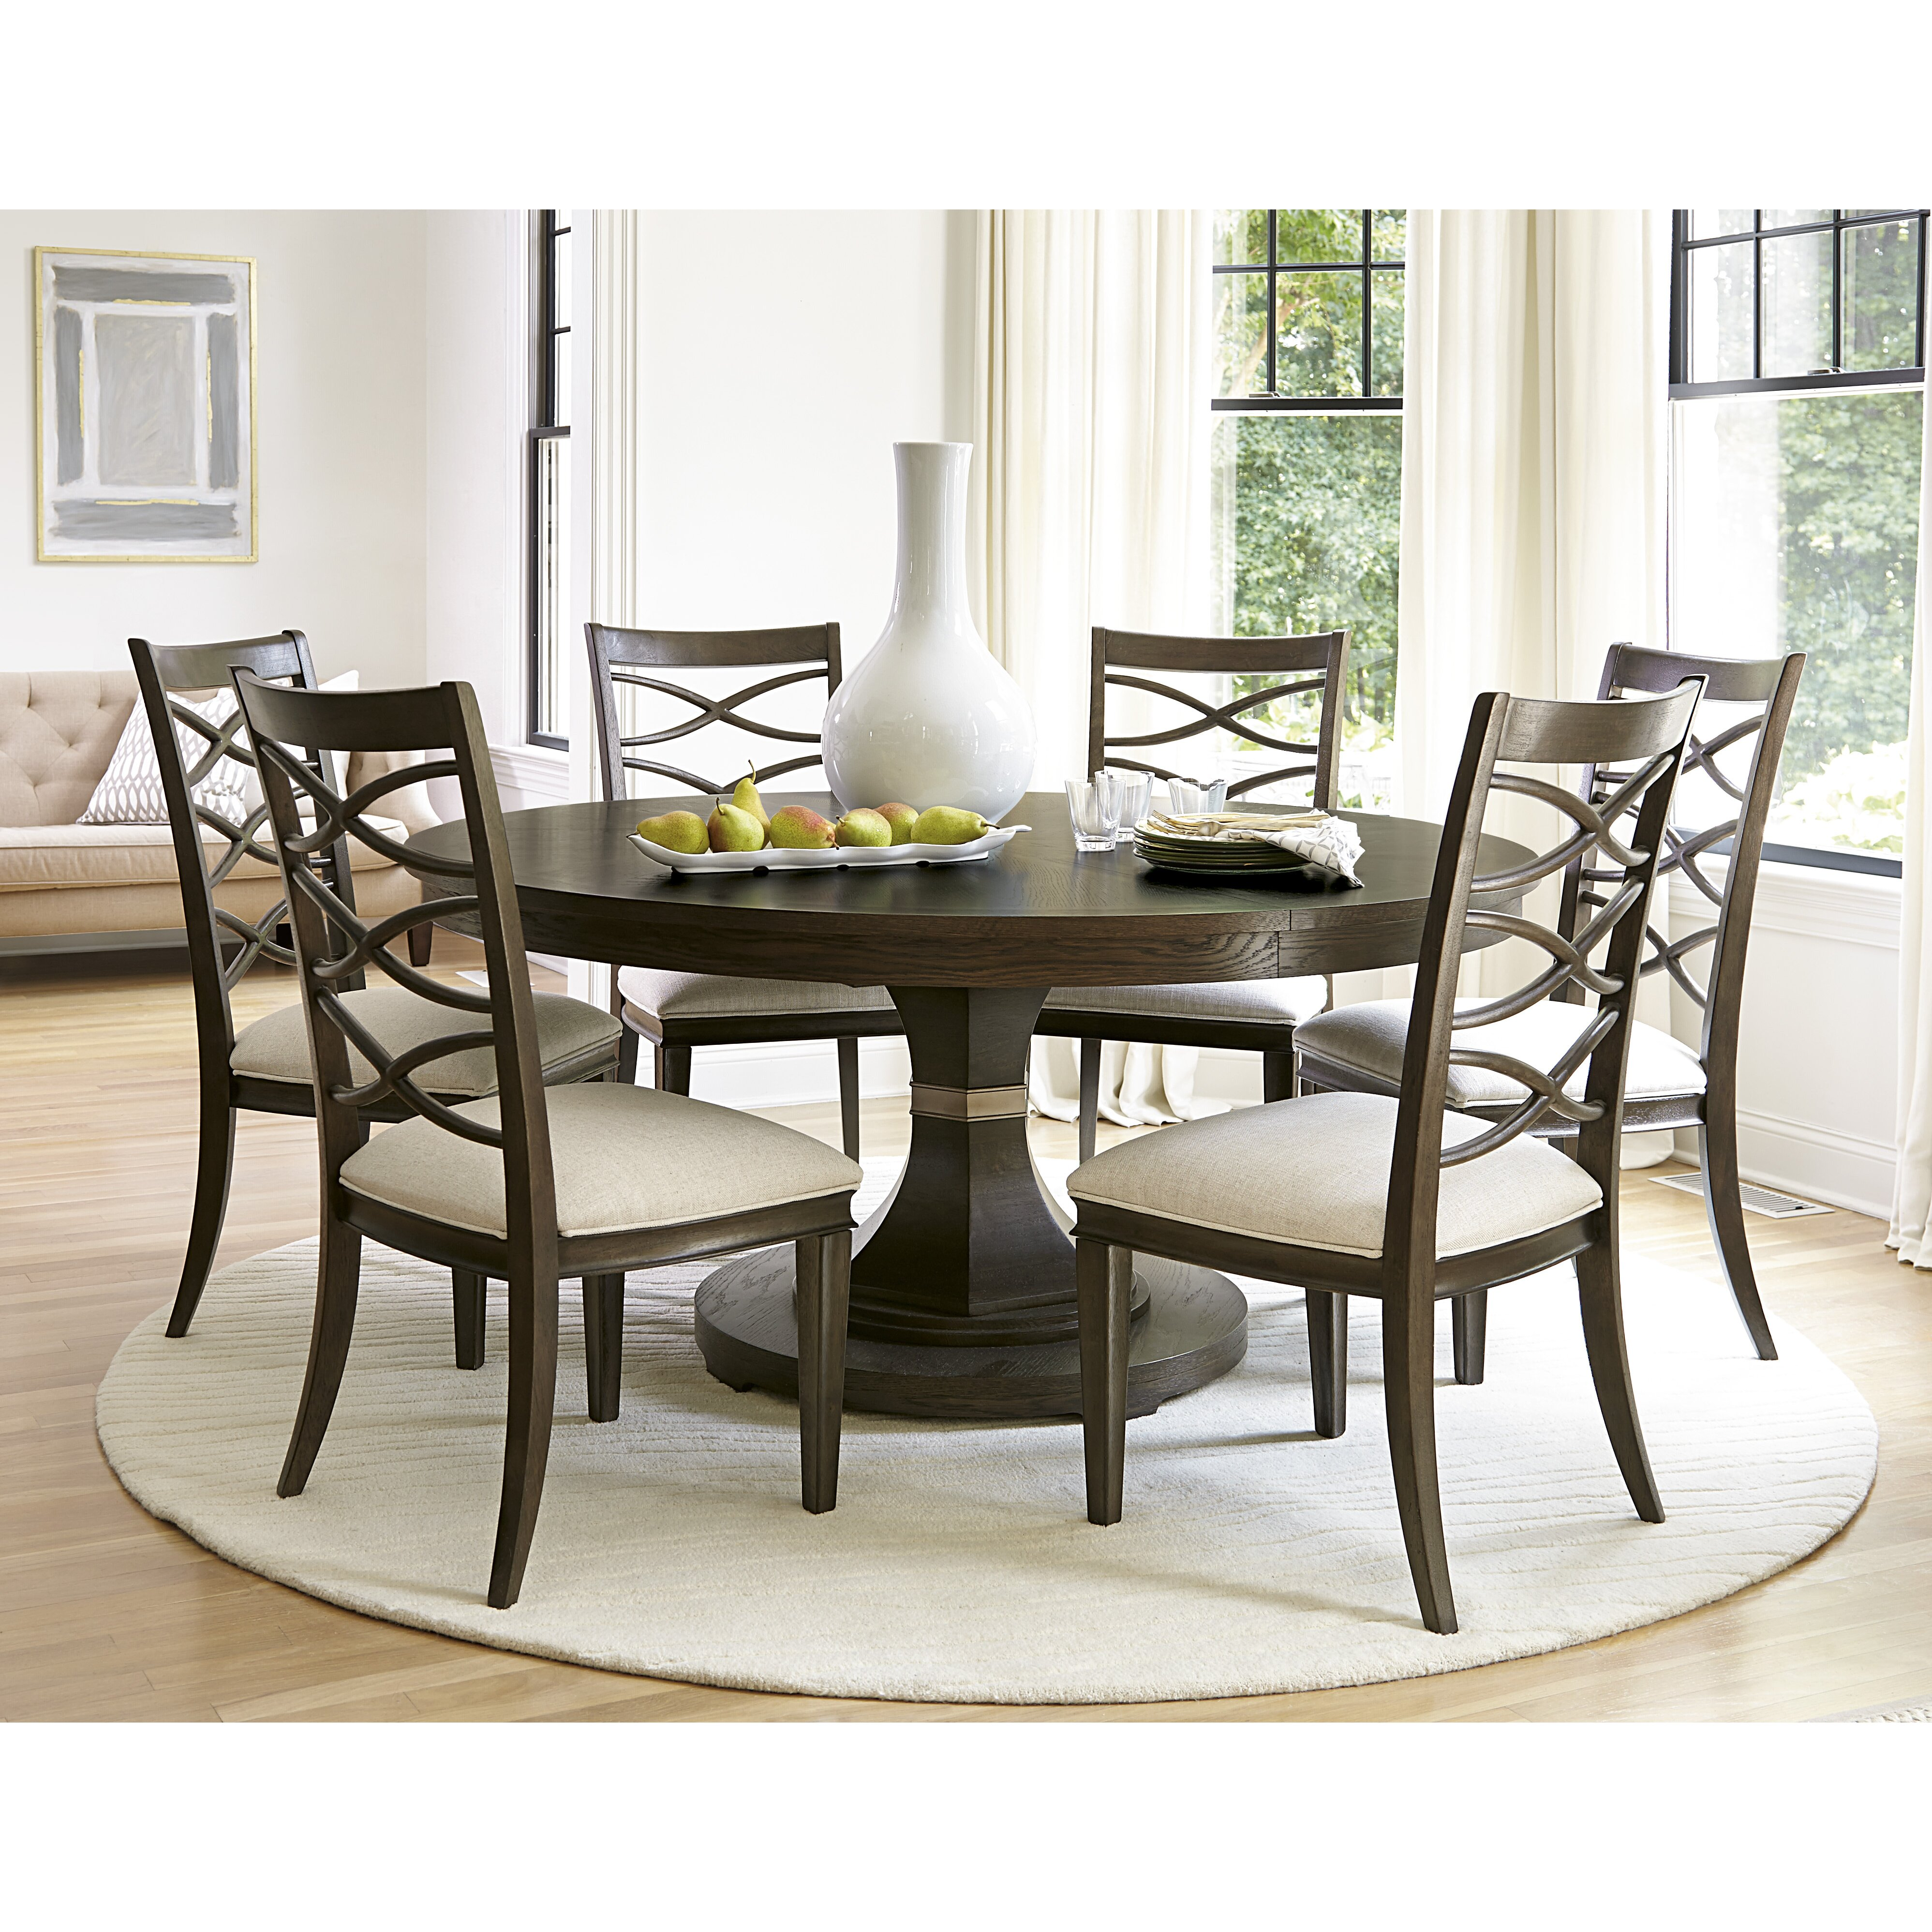 Dining Room Sets: Universal Furniture California 7 Piece Dining Set